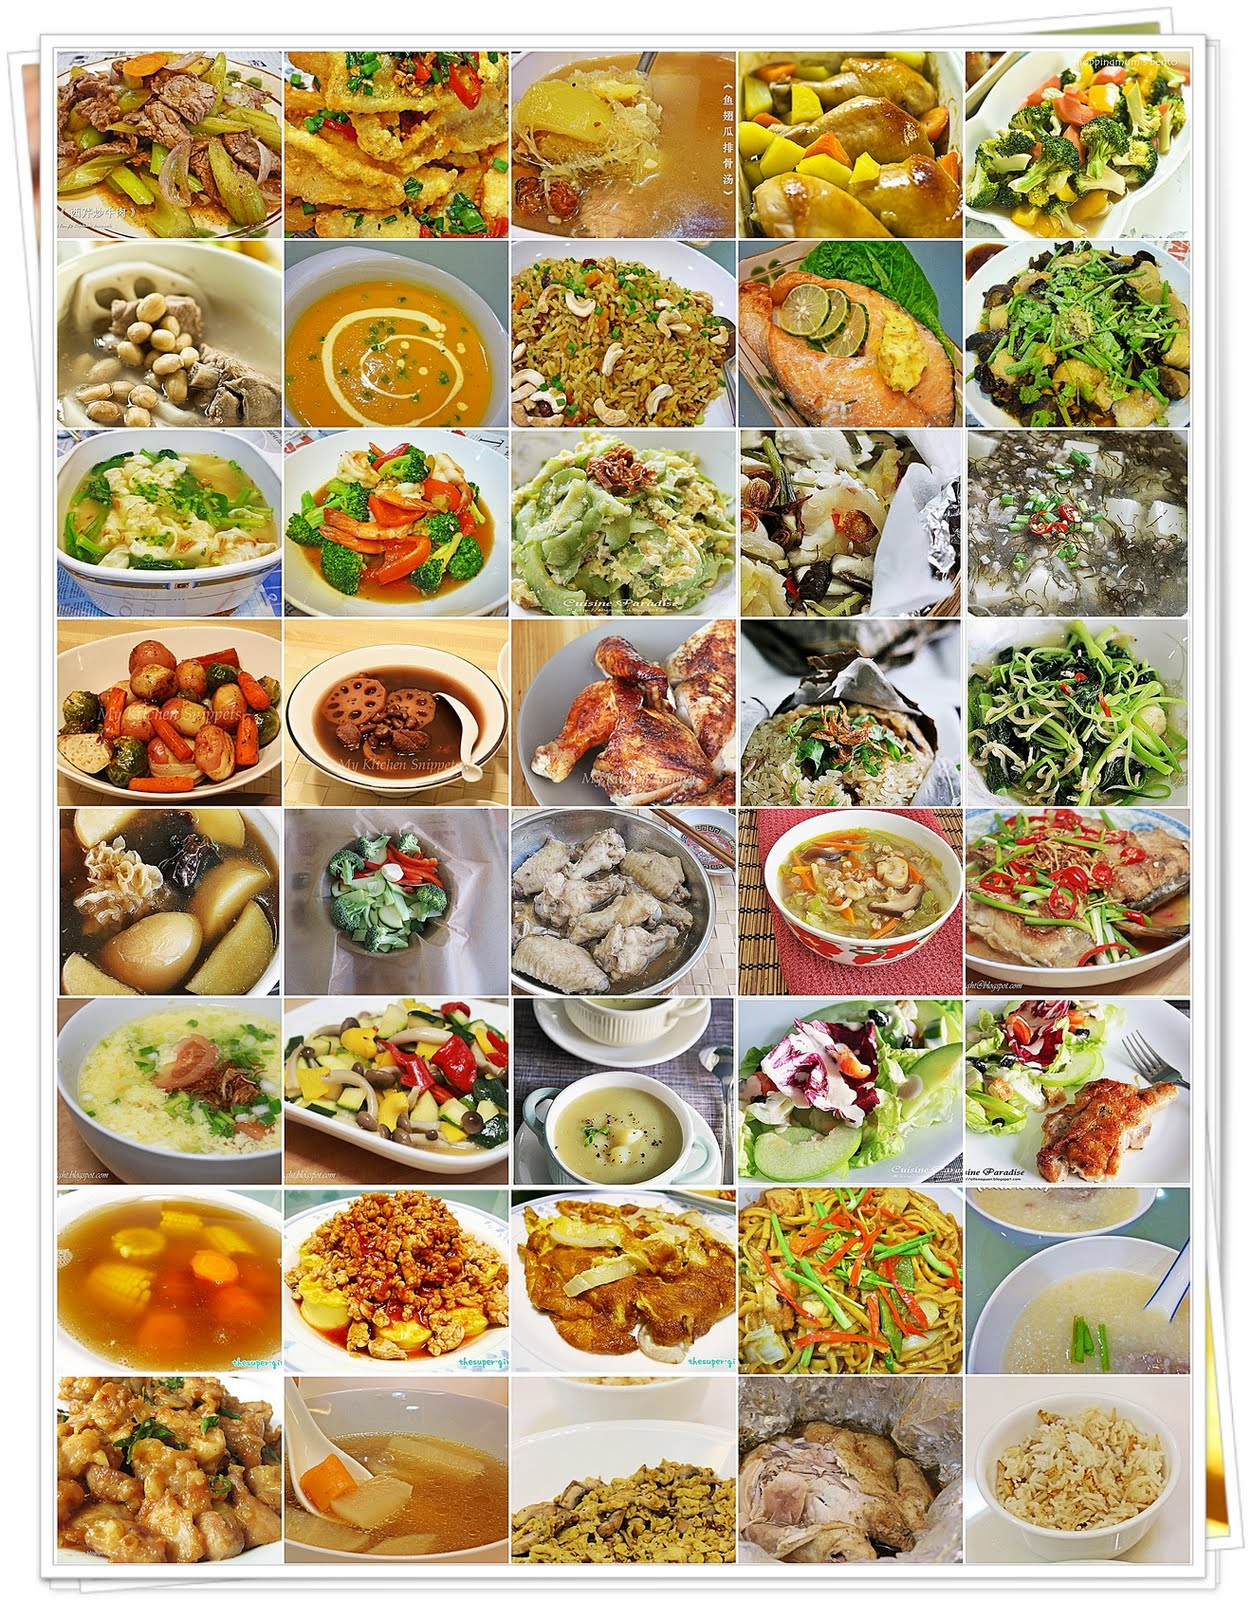 Cuisine paradise singapore food blog recipes reviews and travel 20 budget meal round up forumfinder Choice Image